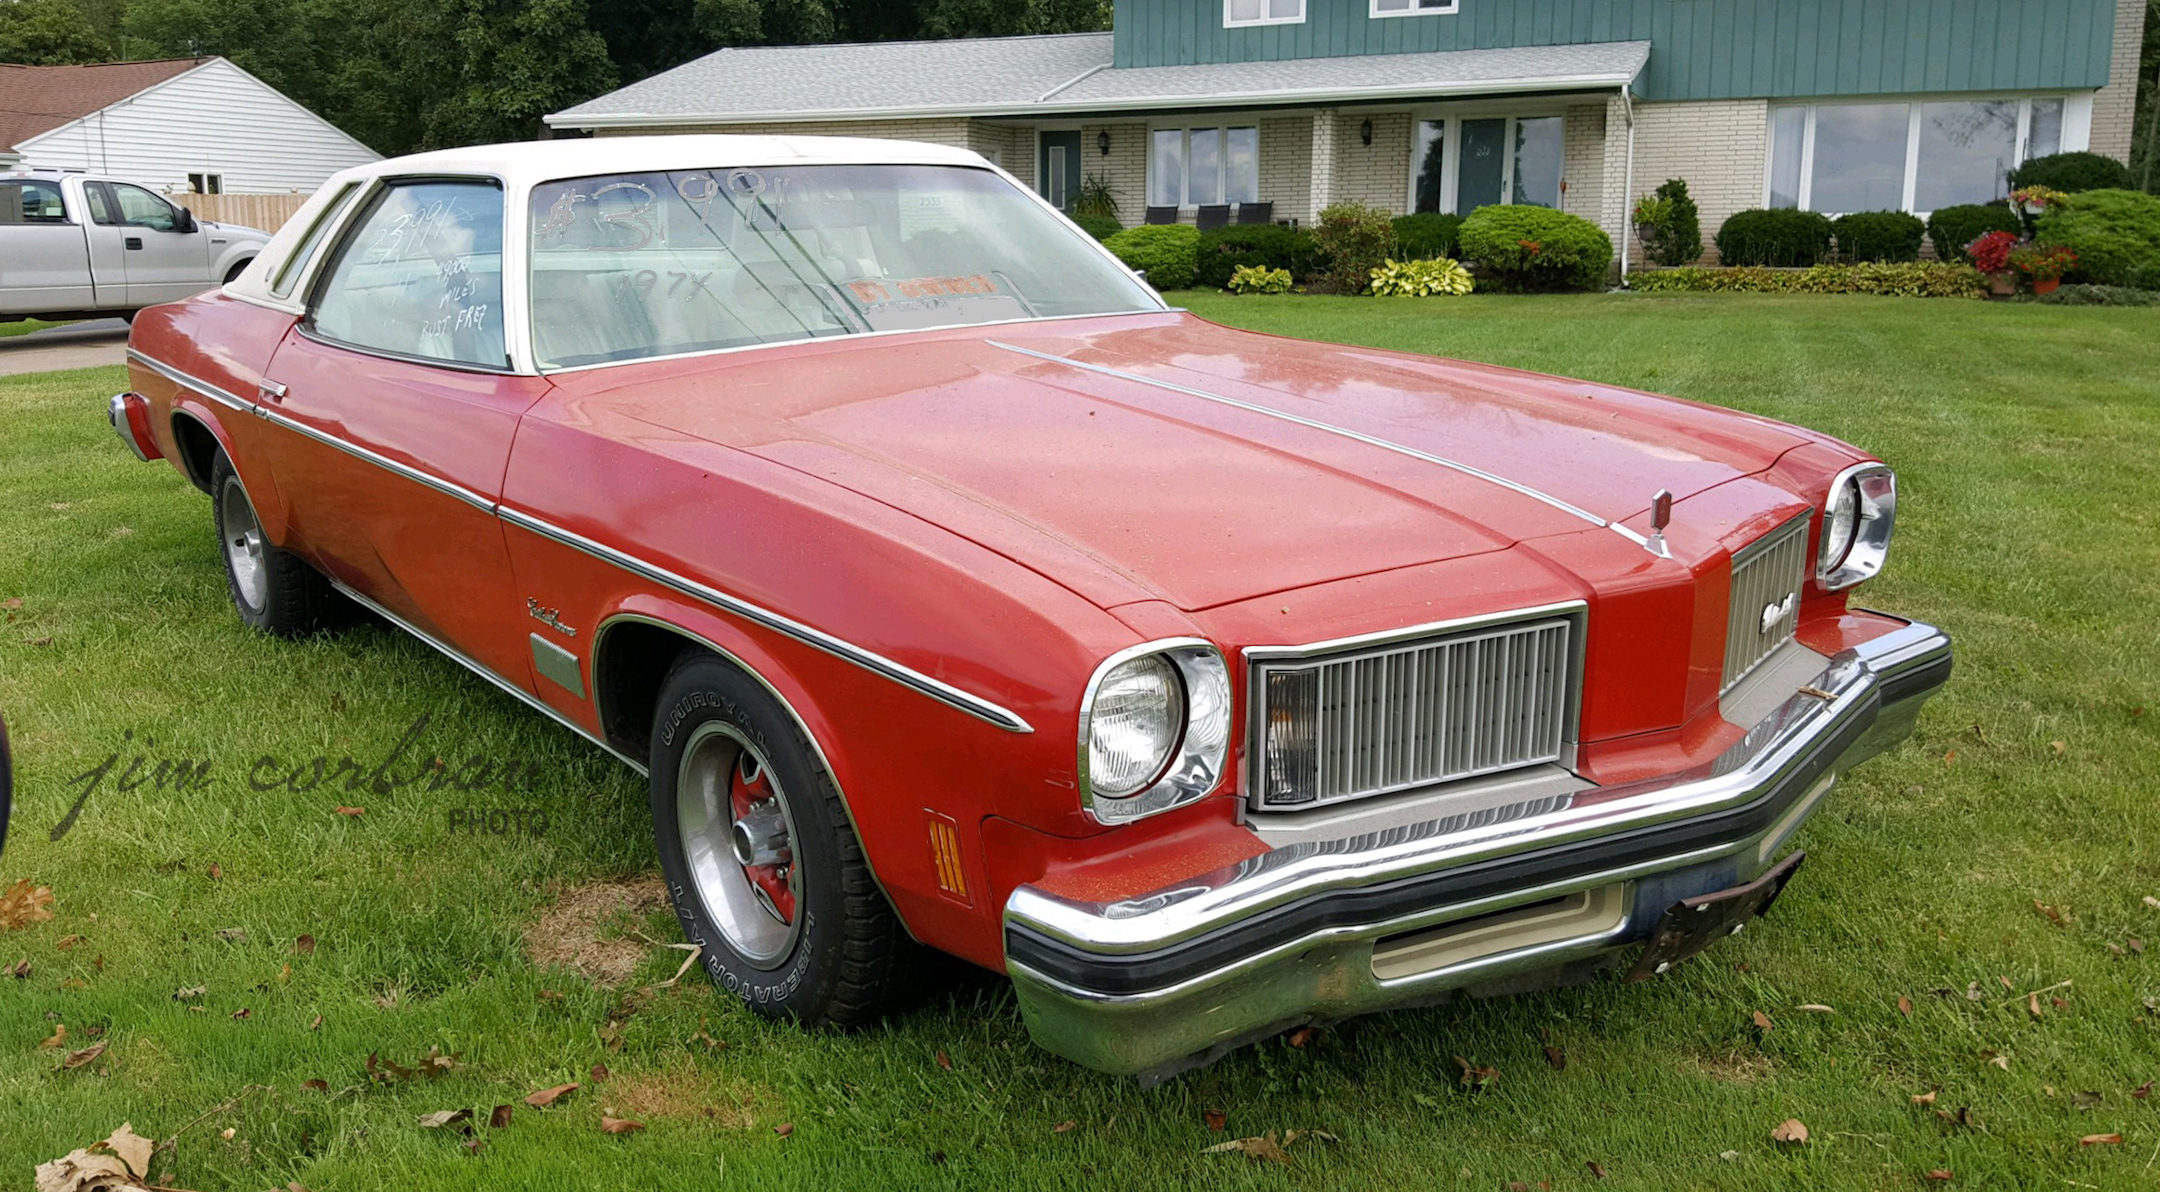 RealRides of WNY - 1975 Olds Cutlass Supreme